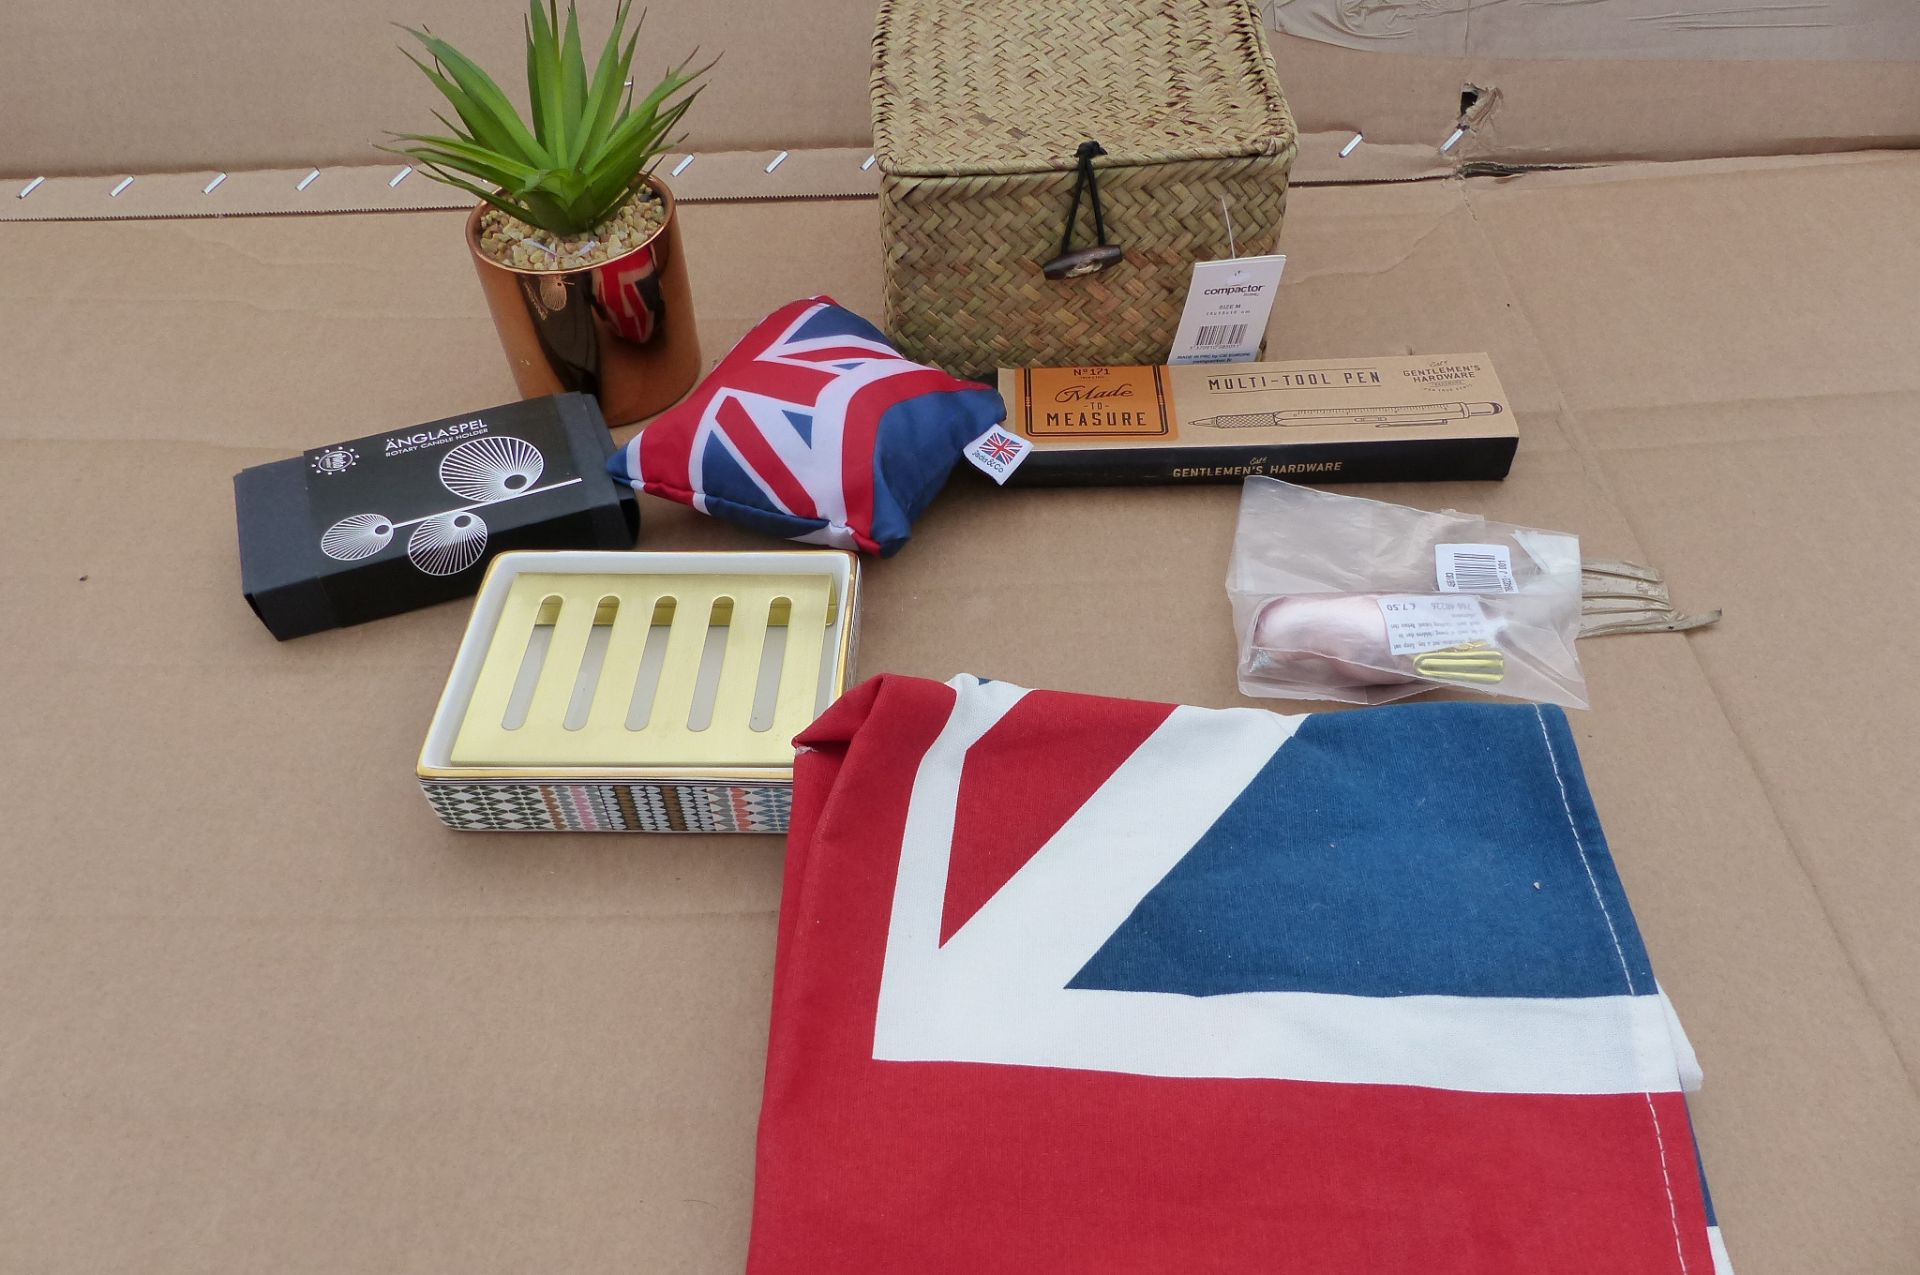 8 items to include shopping bag, artificial plant, soap dish and much more